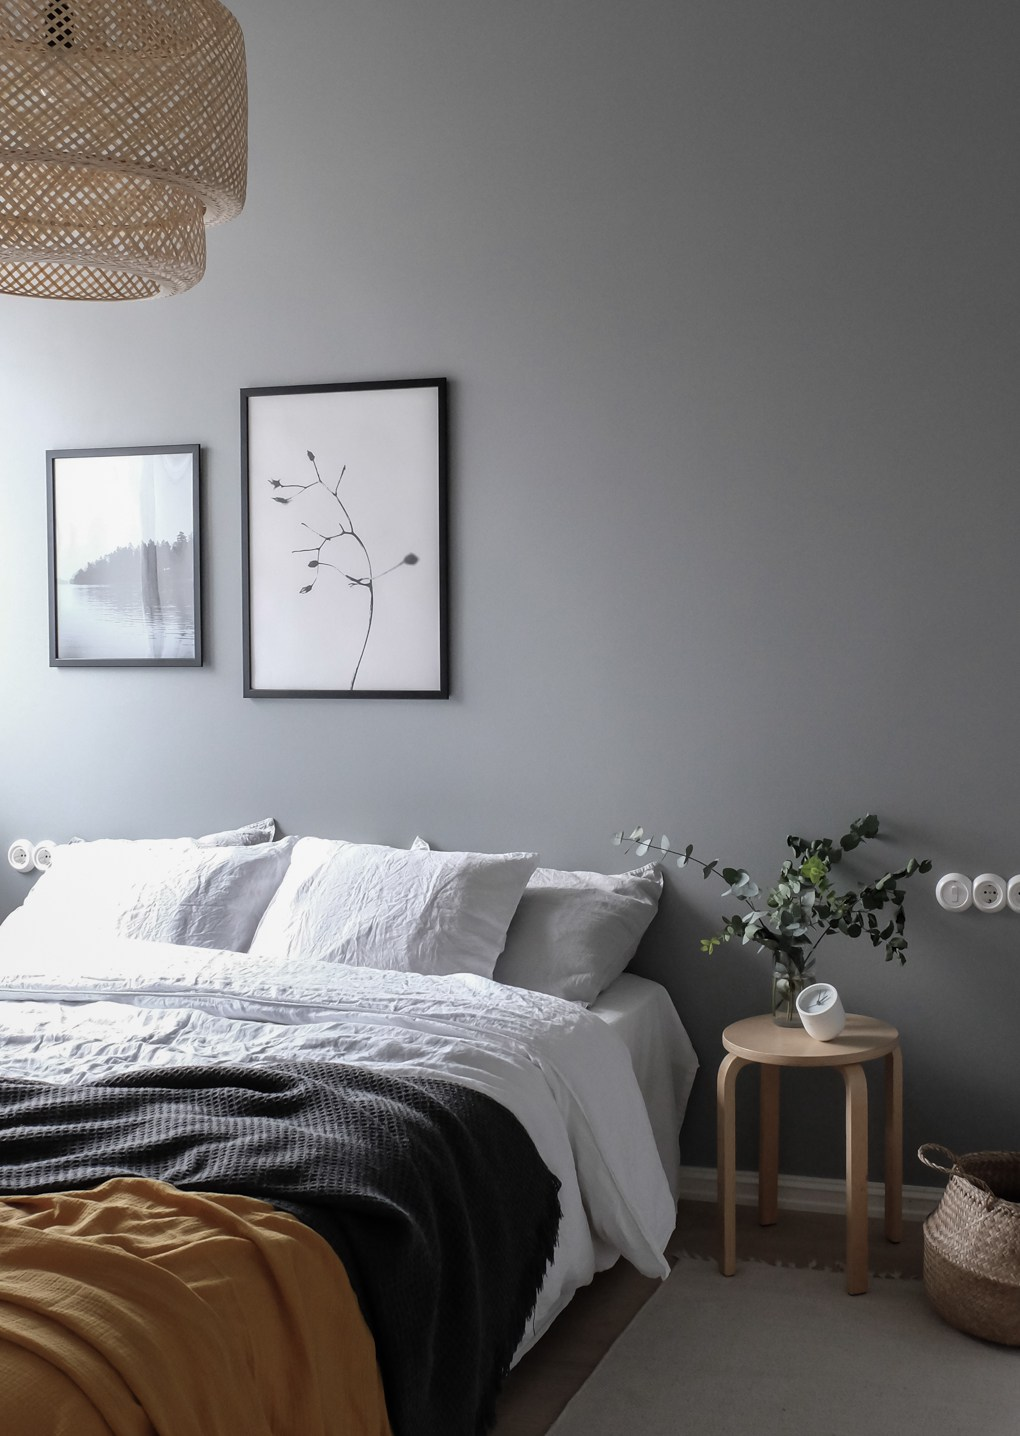 Monochrome Bedroom Inspiration